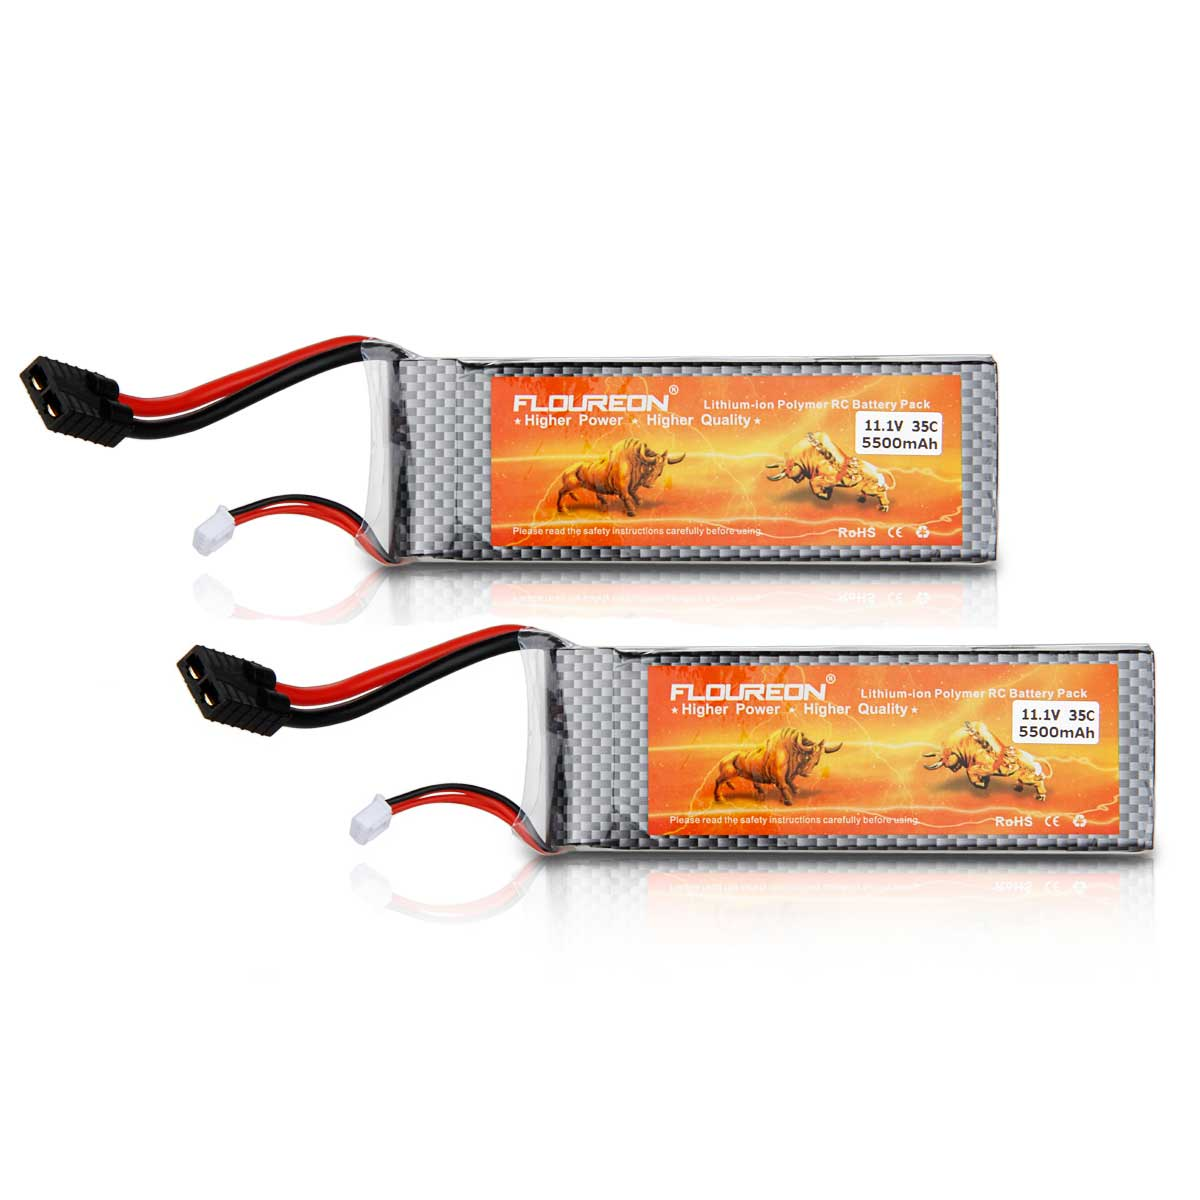 2X Floureon 11.1V 5500mAh 35C 3S1P Traxxas RC Li-ion Polymer Battery for Quadcopter Airplane Helicopter Car... by Floureon